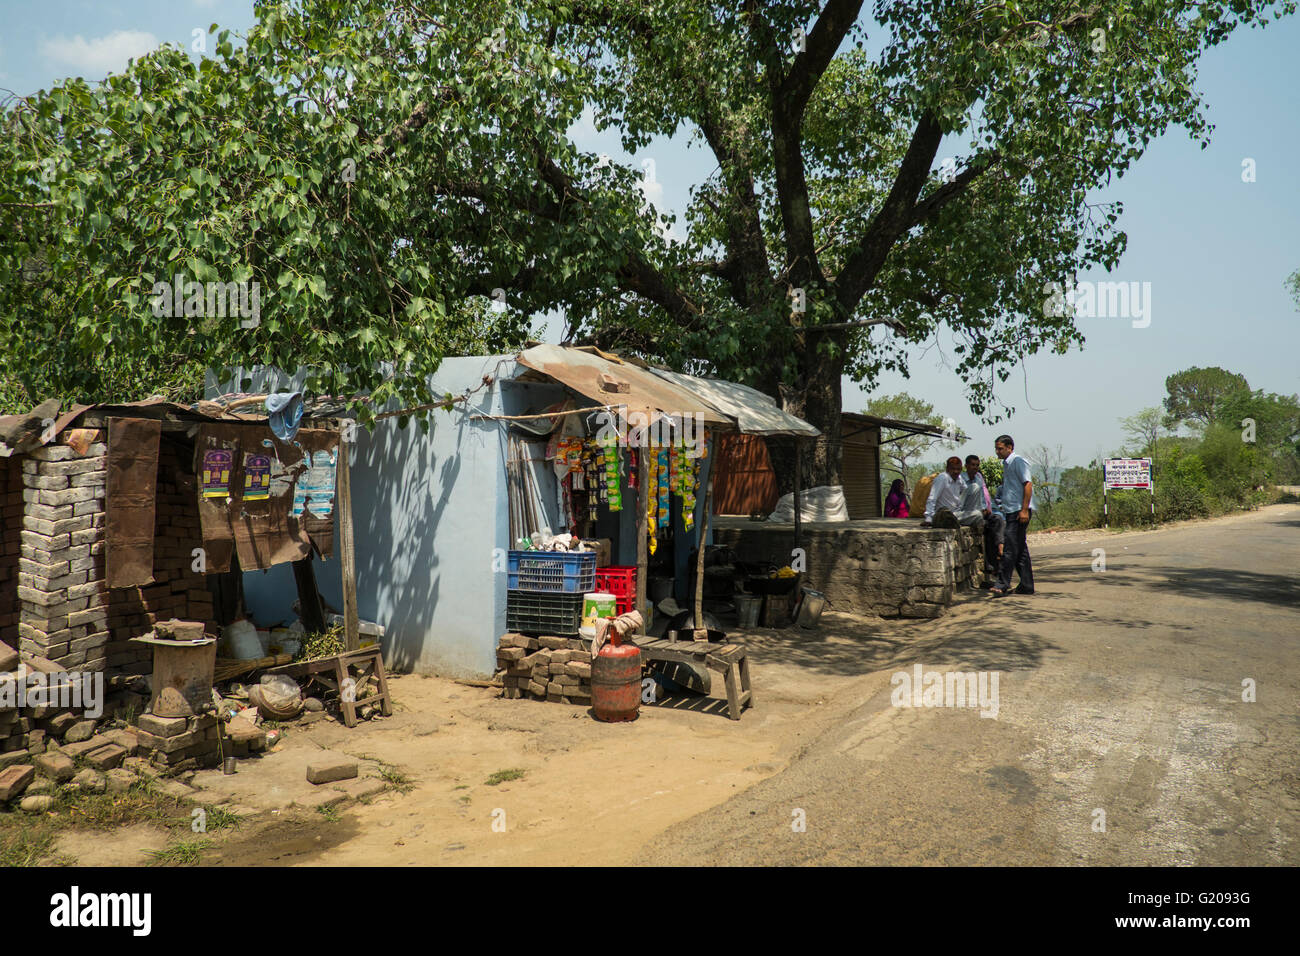 A typical village tea shop next to a bus stop in rural Himachal Pradesh, India - Stock Image